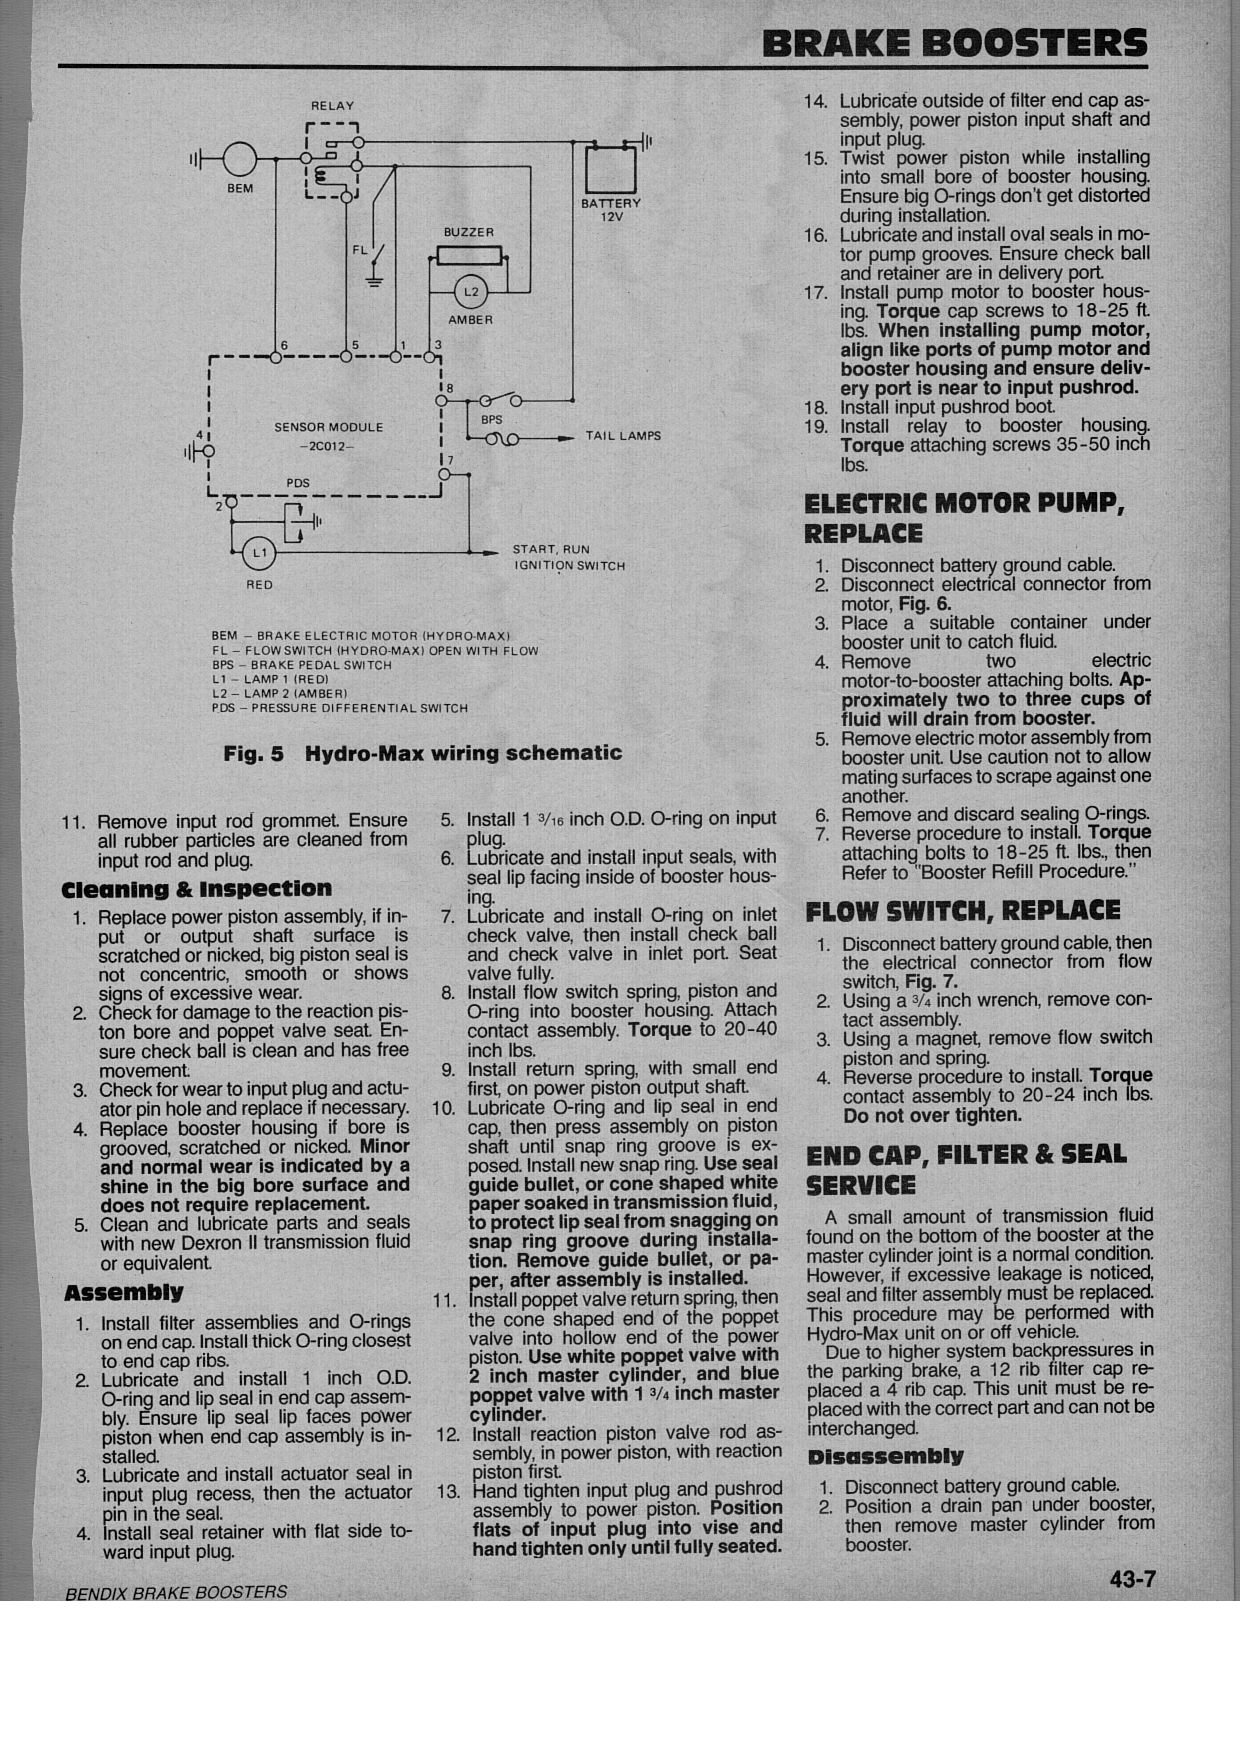 1988 Ford F700 Rear Brakes Wiring Diagram For Car Diagrams Explained U2022 Rh Ethermag Co